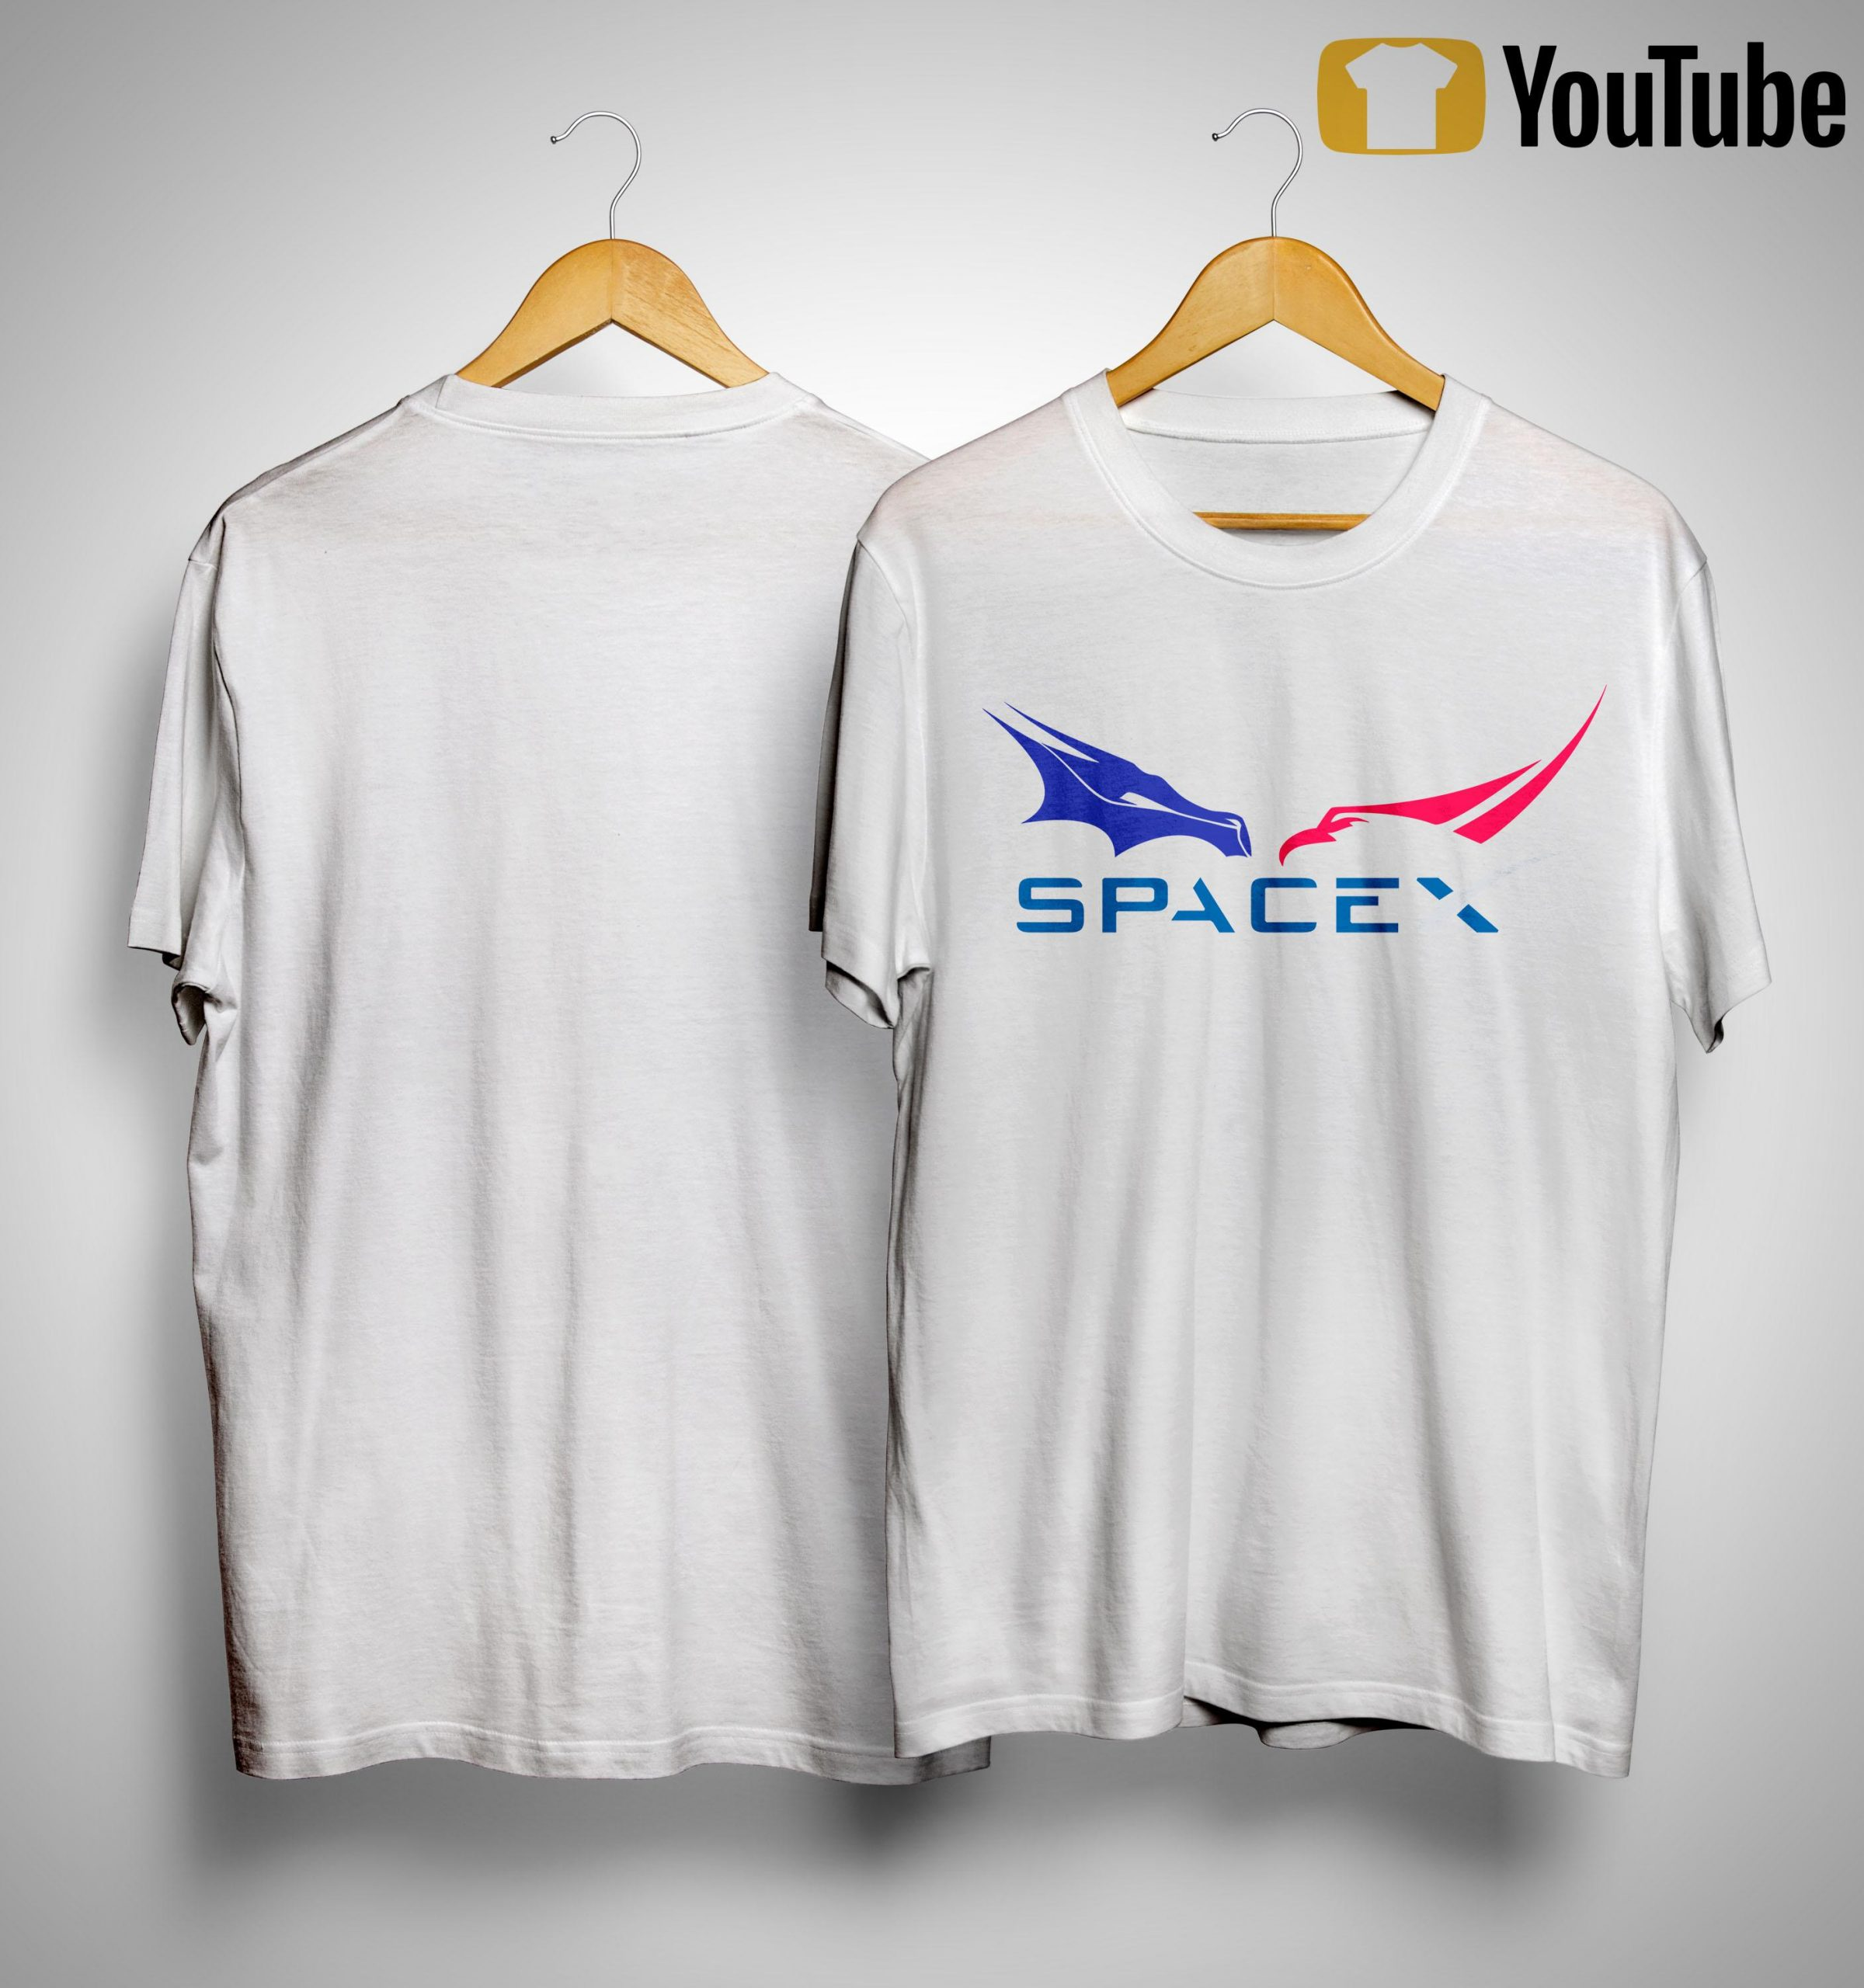 Dragon Falcon F9 Rocket Tesla Spacex Shirt